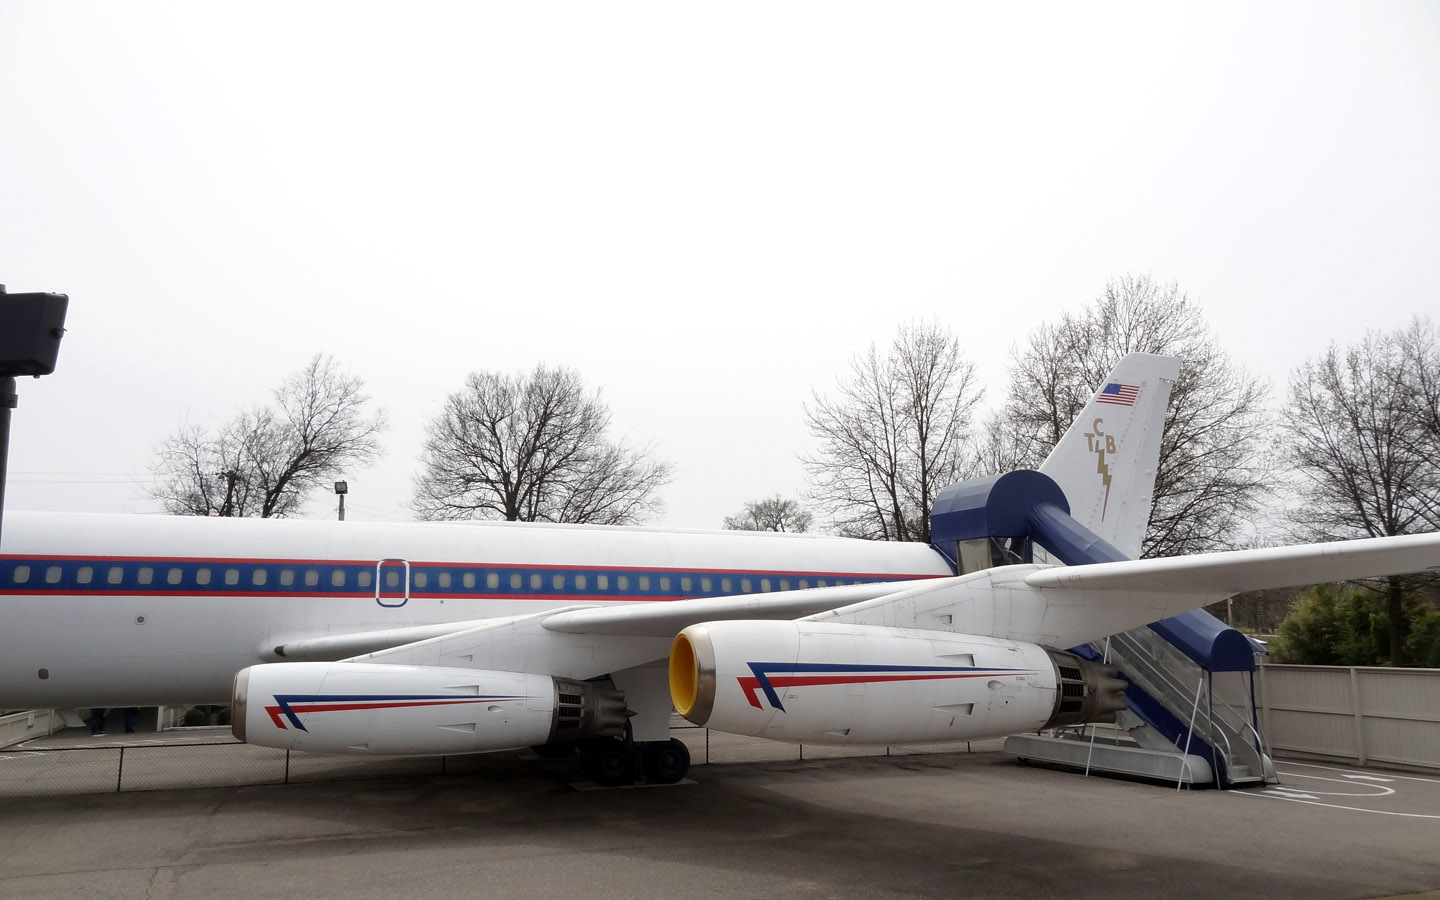 Elvis Presley's plane in Graceland, Memphis, Tennessee USA 2014